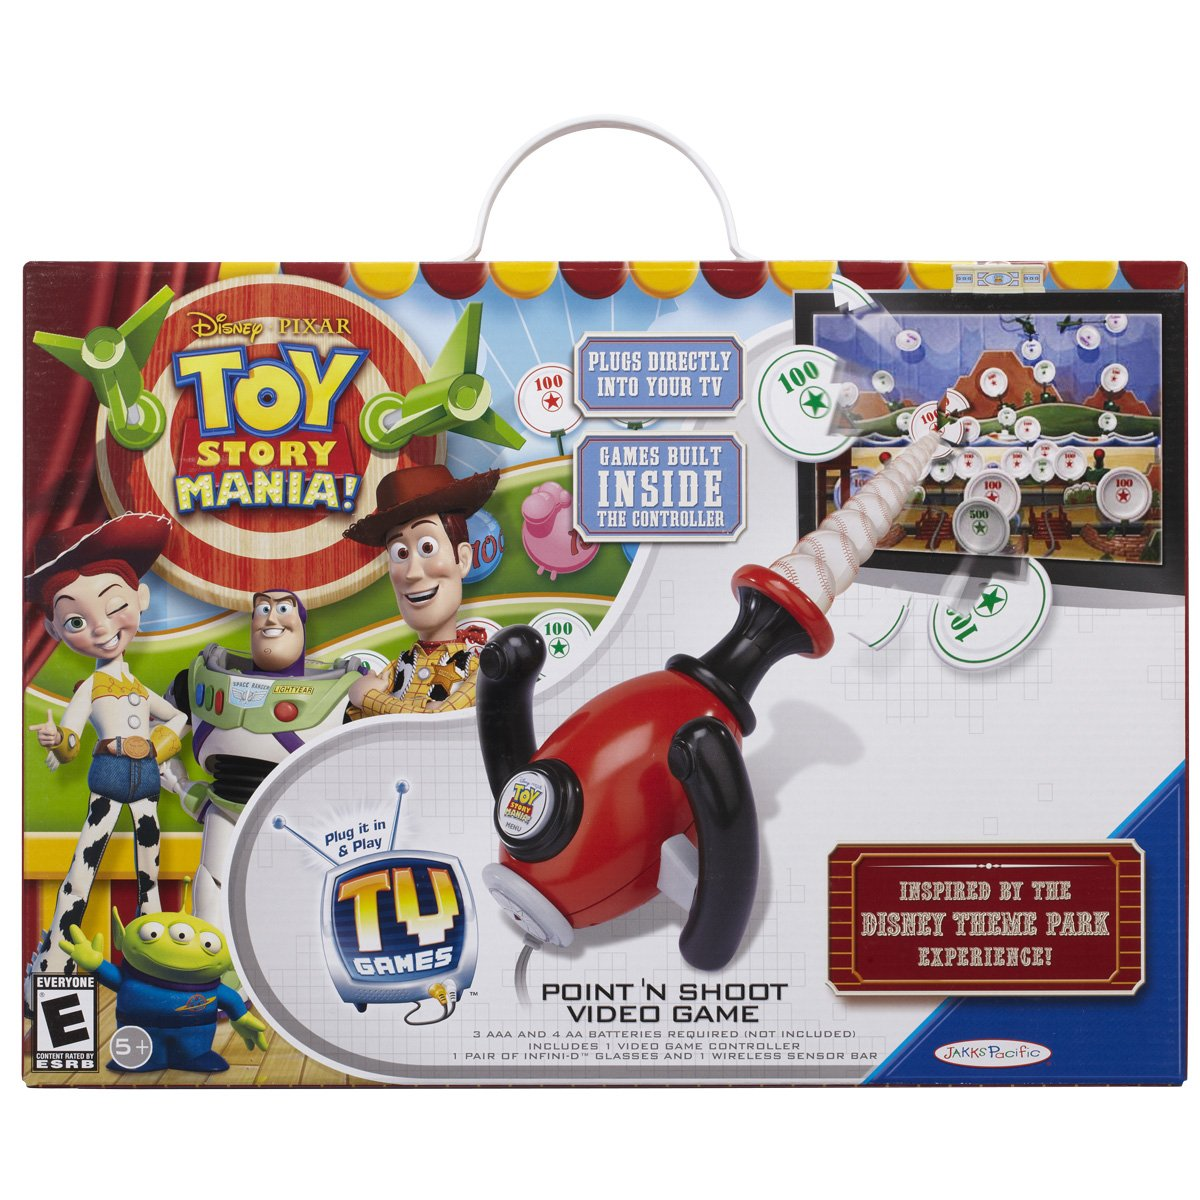 Toy Story Mania TV Games Deluxe Toy Story Mania TV Games (japan import)